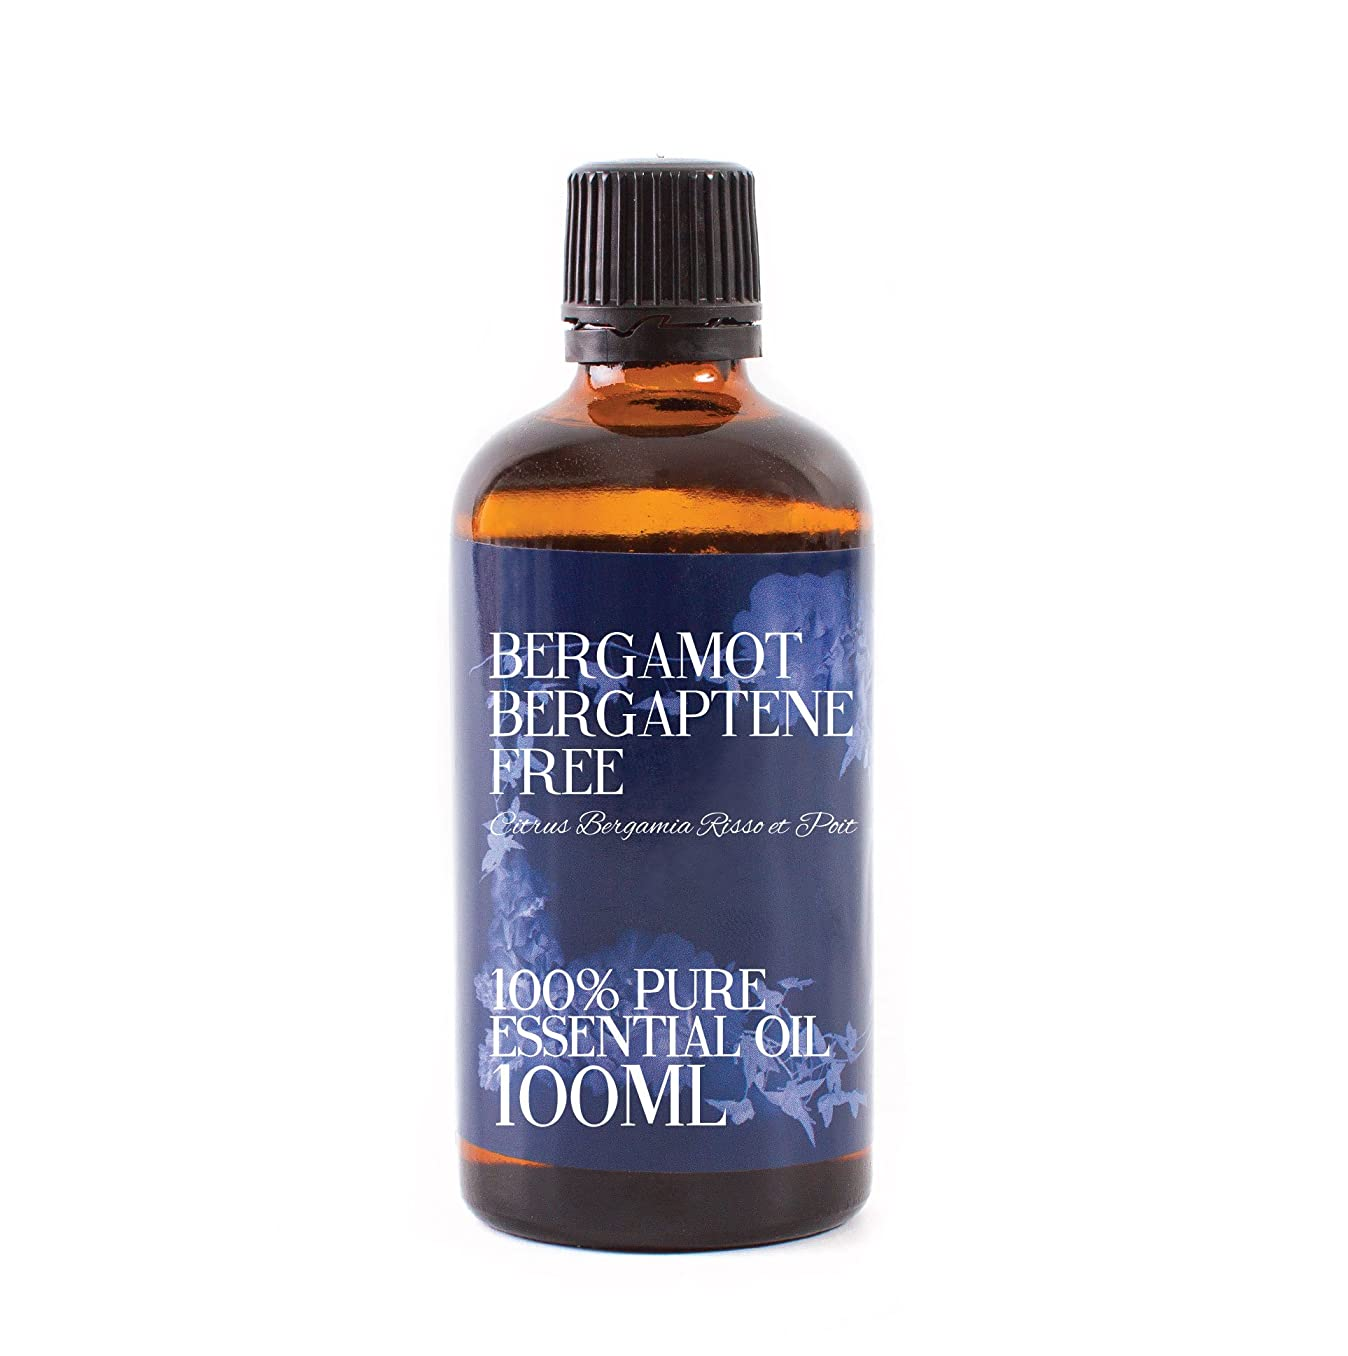 まぶしさ本部誘惑するMystic Moments | Bergamot Bergaptene Free Essential Oil - 100ml - 100% Pure